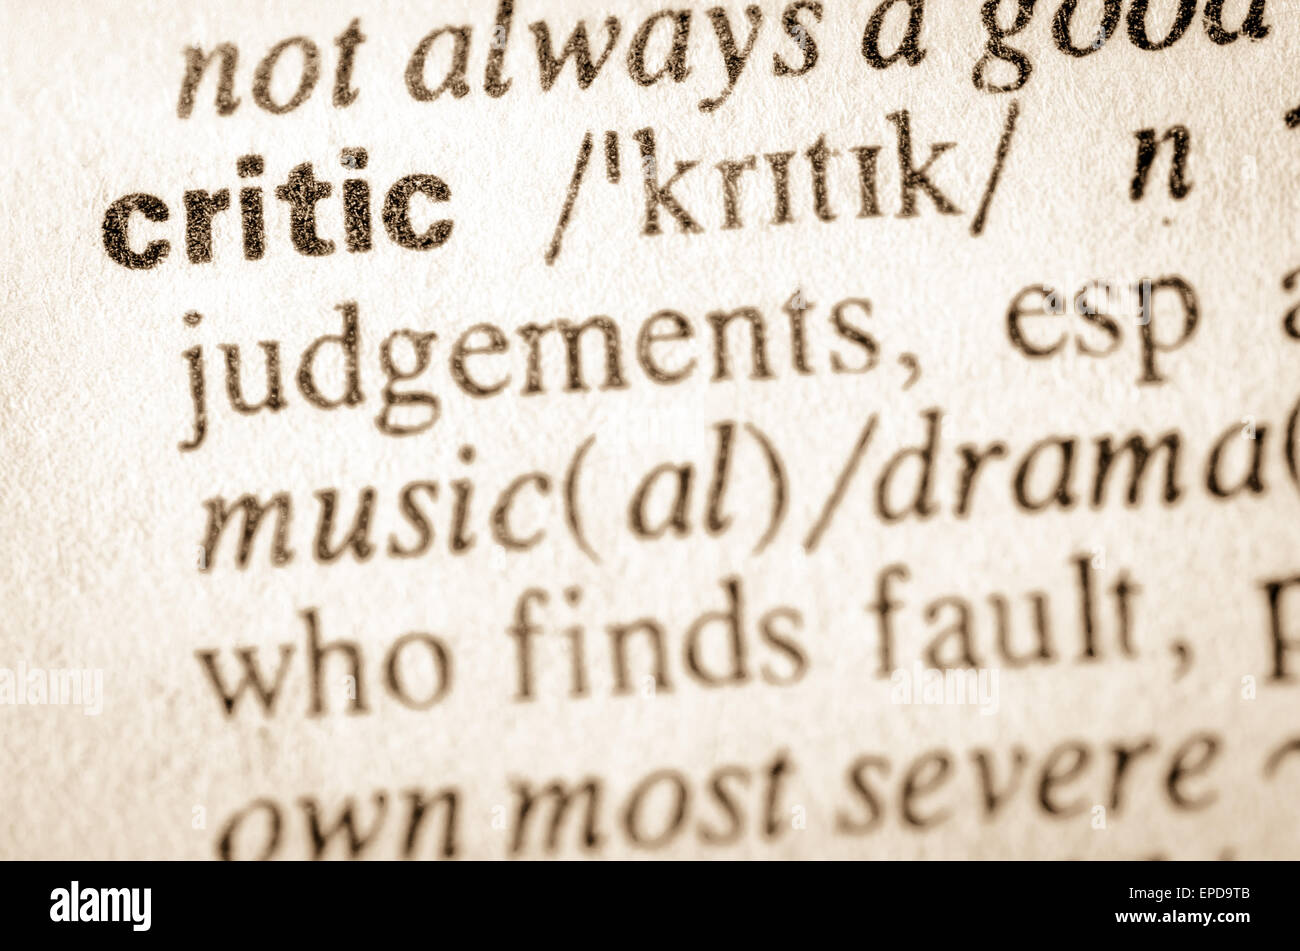 Definition of word critic in dictionary - Stock Image